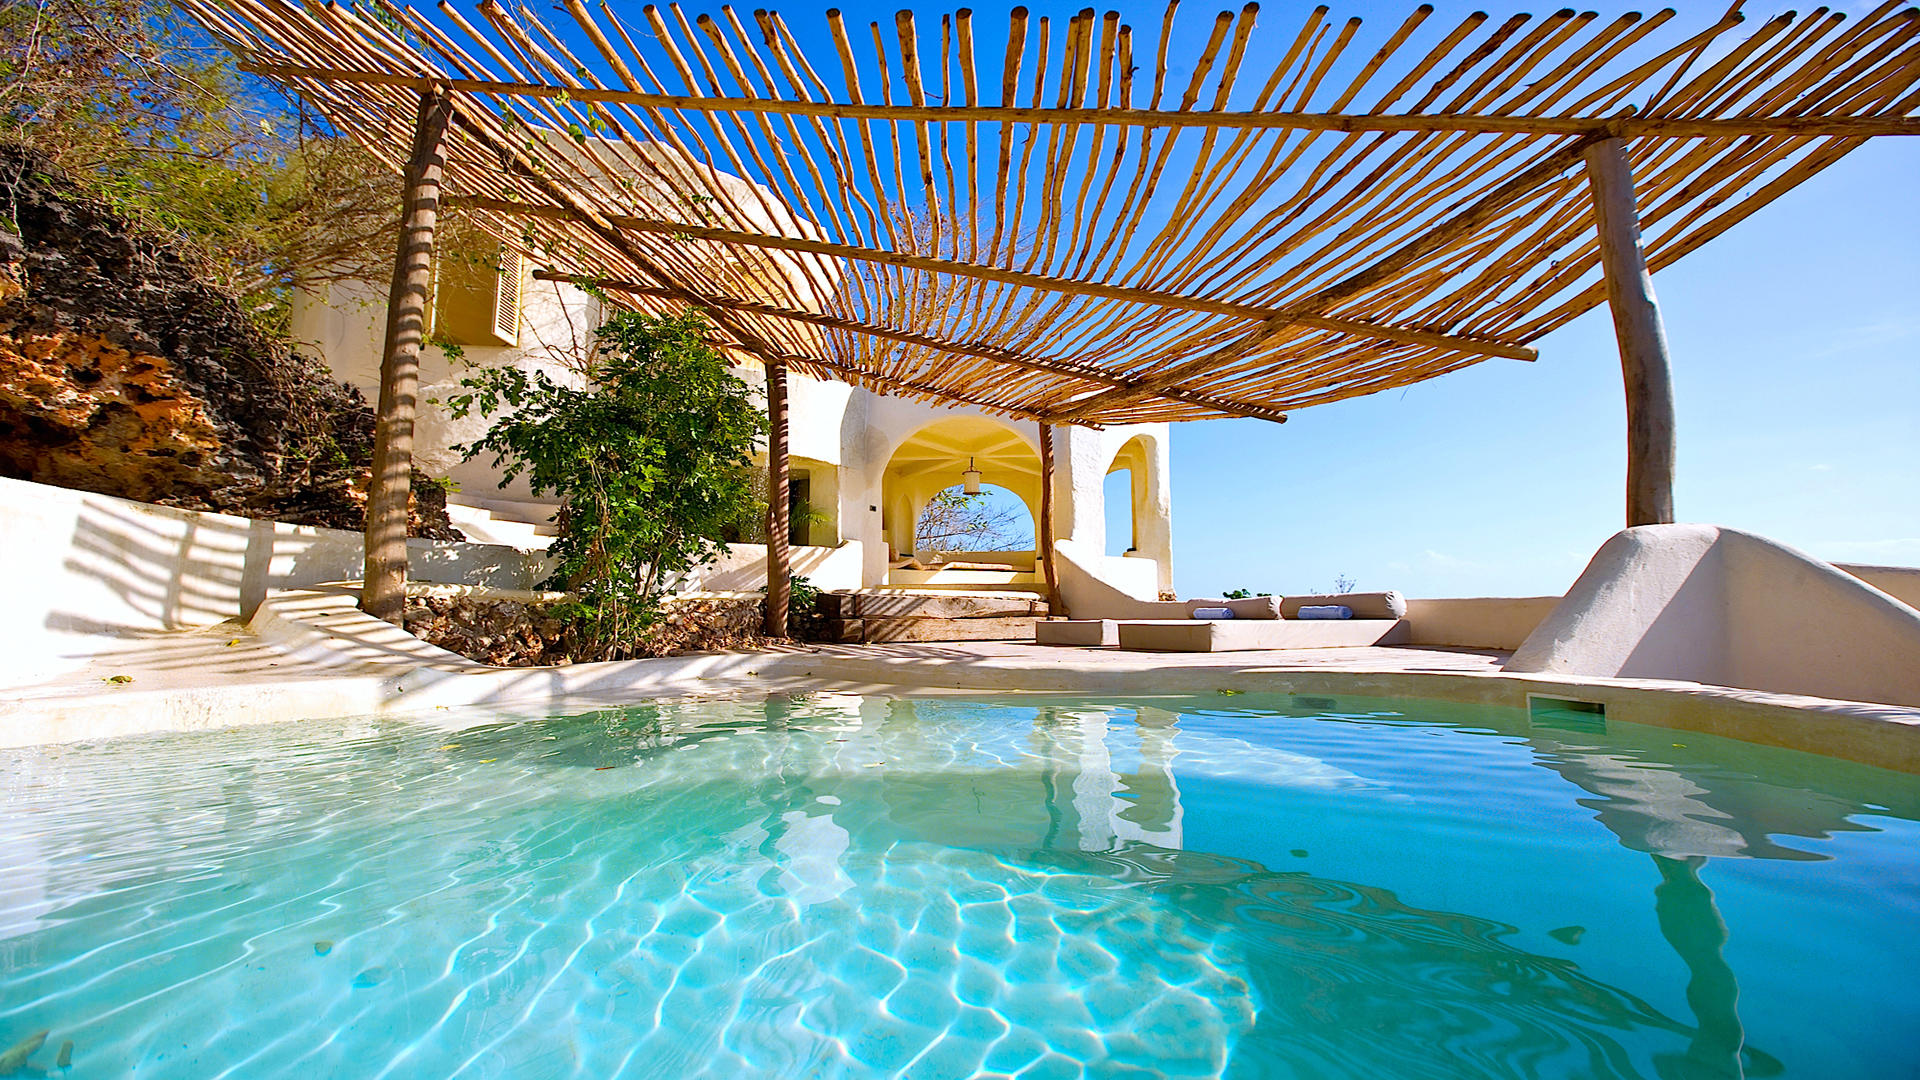 Kilindi-Zanzibar---Room---Private-Day-Pavilion-with-Plunge-Pool---4